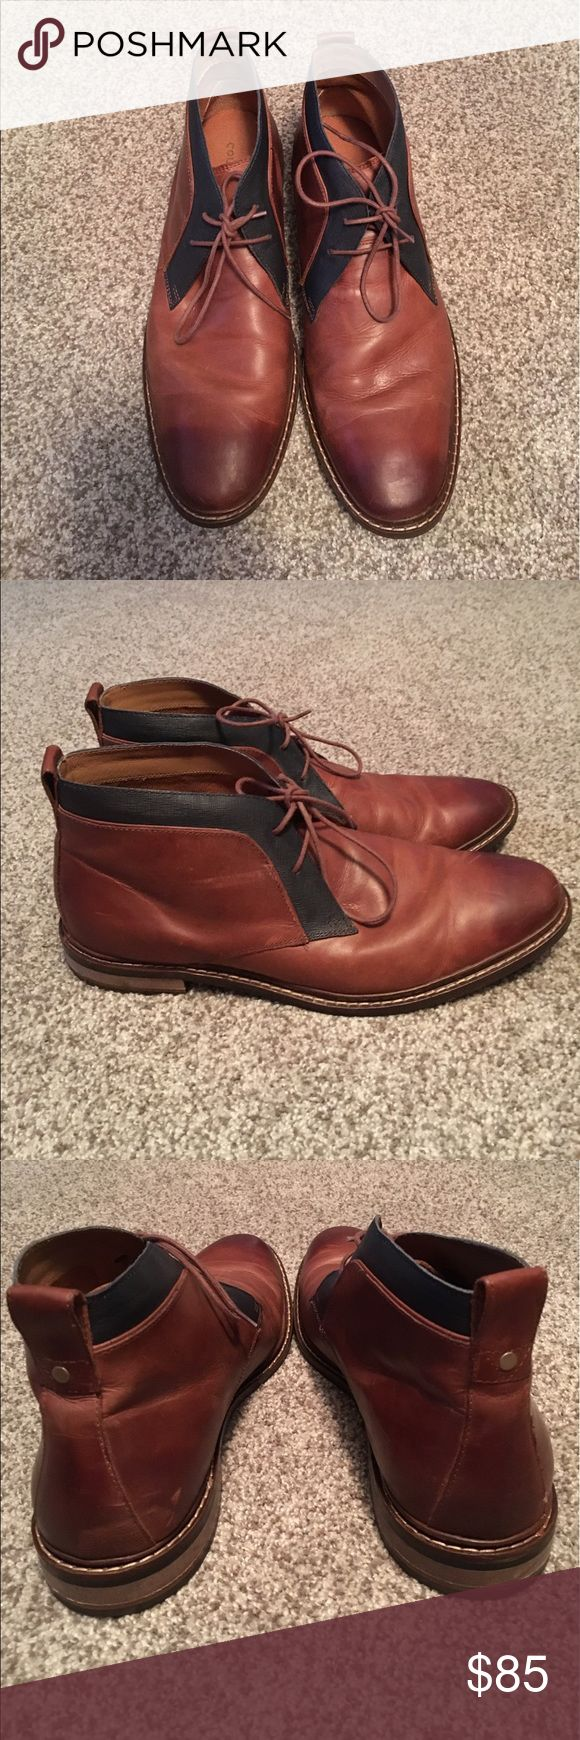 Cole Haan Grand OS ankle chukka boot Brown Leather ankle boot chukka boot for men by Cole Haan. Grand Os. Lightly worn. Lace up. Blue trim around ankle. Cole Haan Shoes Chukka Boots